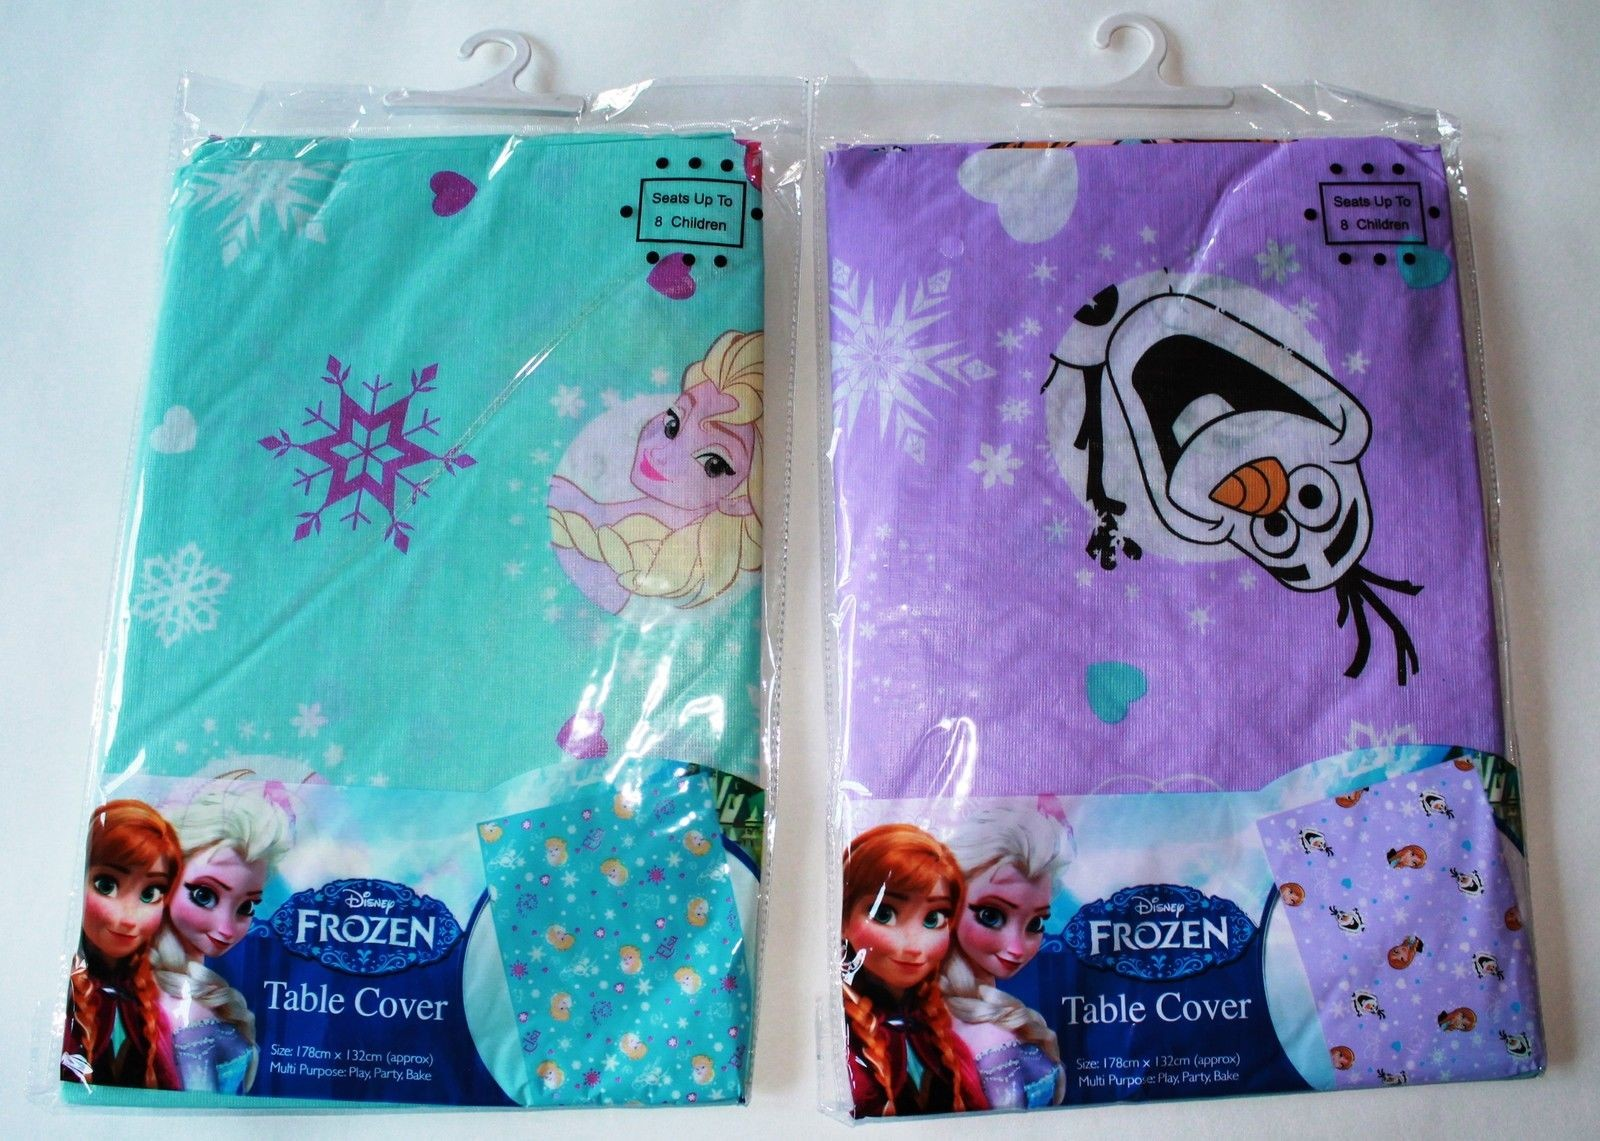 Disney Frozen Wipe Clean Tablecloth - Assorted Over 3 Designs